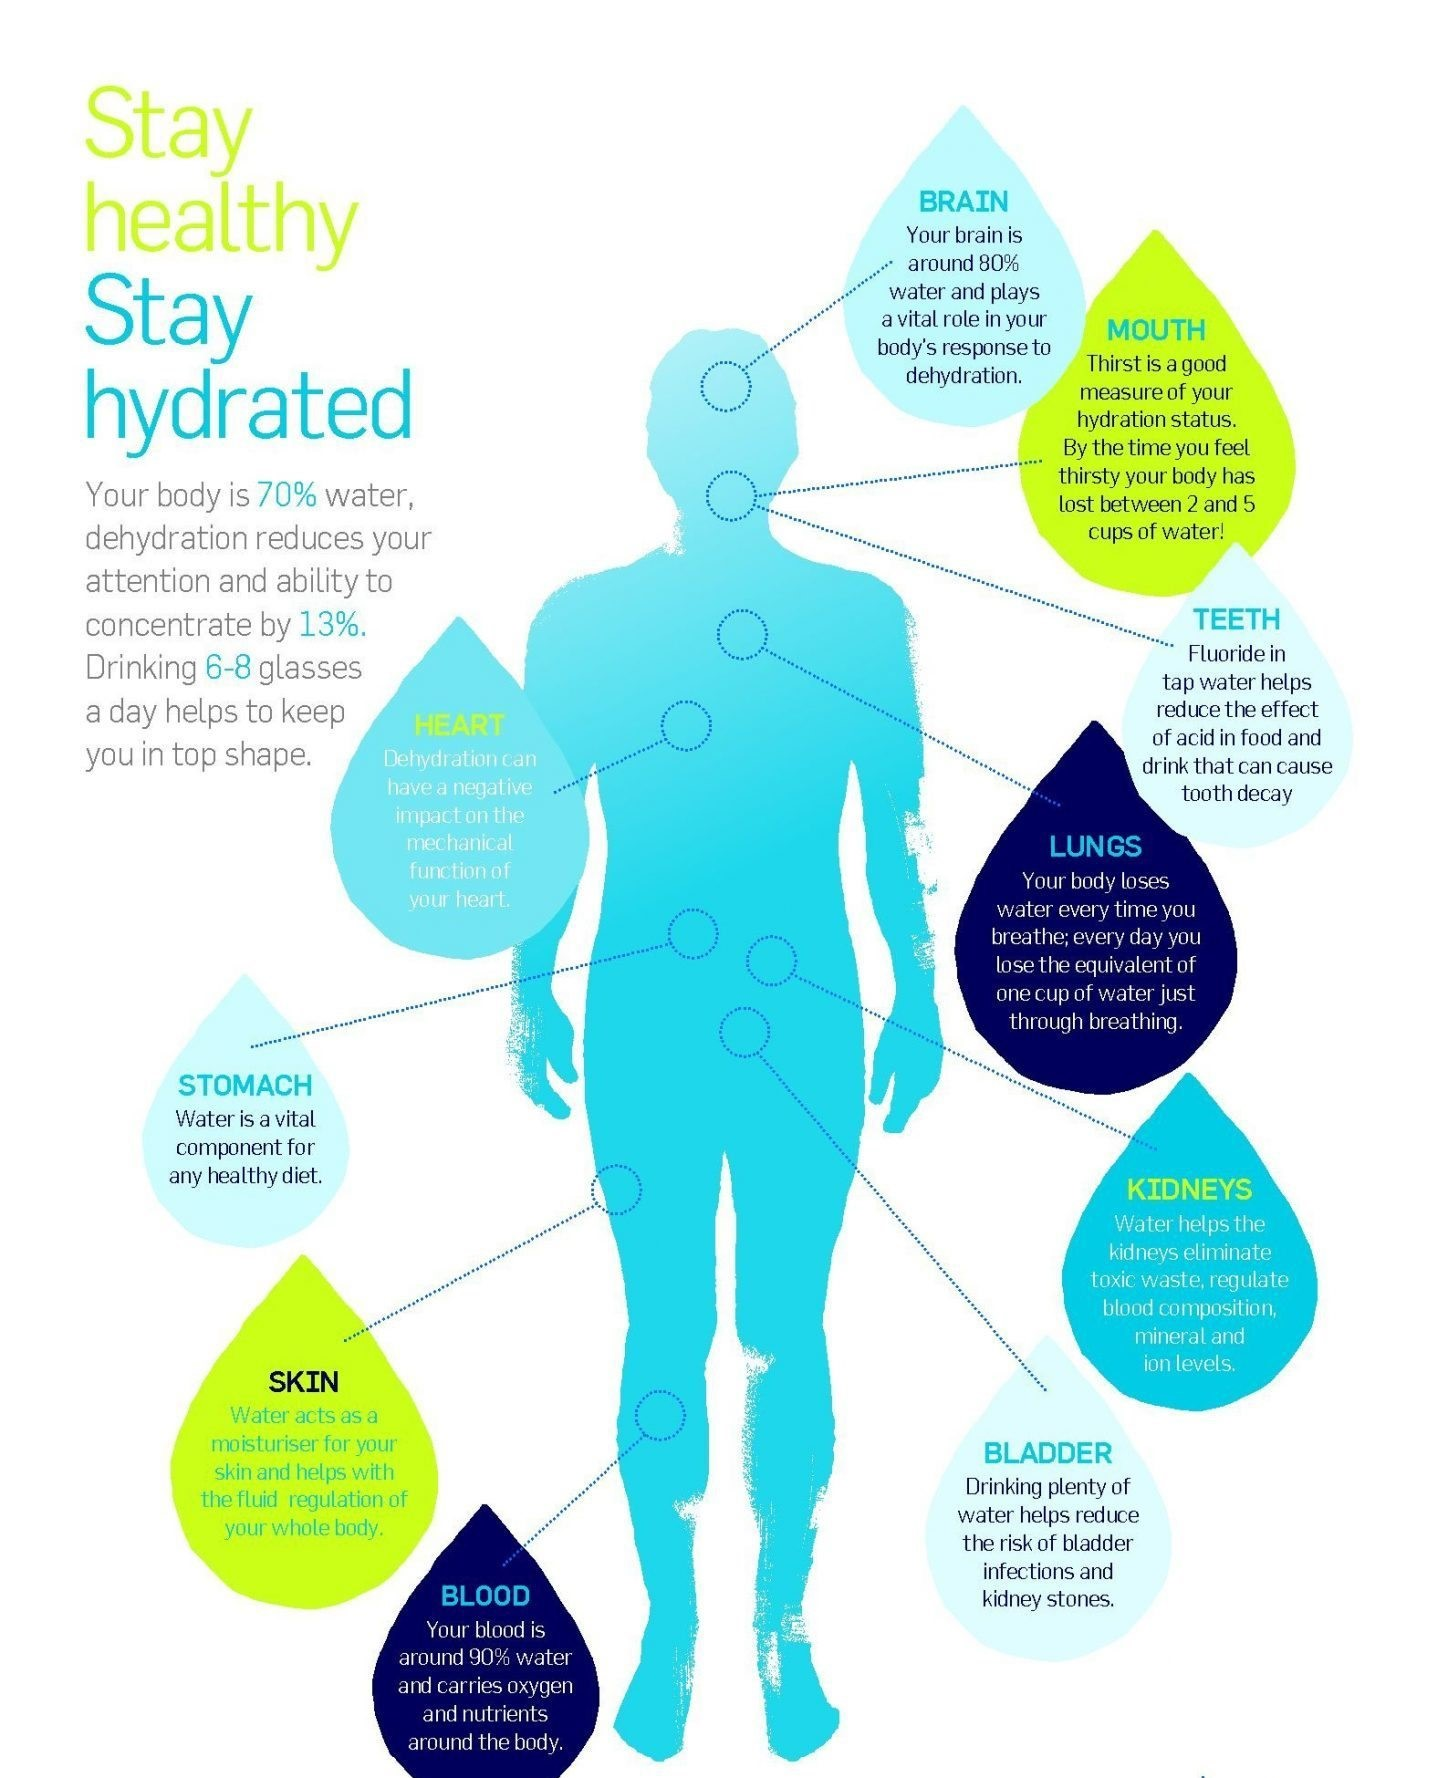 healthy-hydration-starts-with-water-but-does-not-end-there